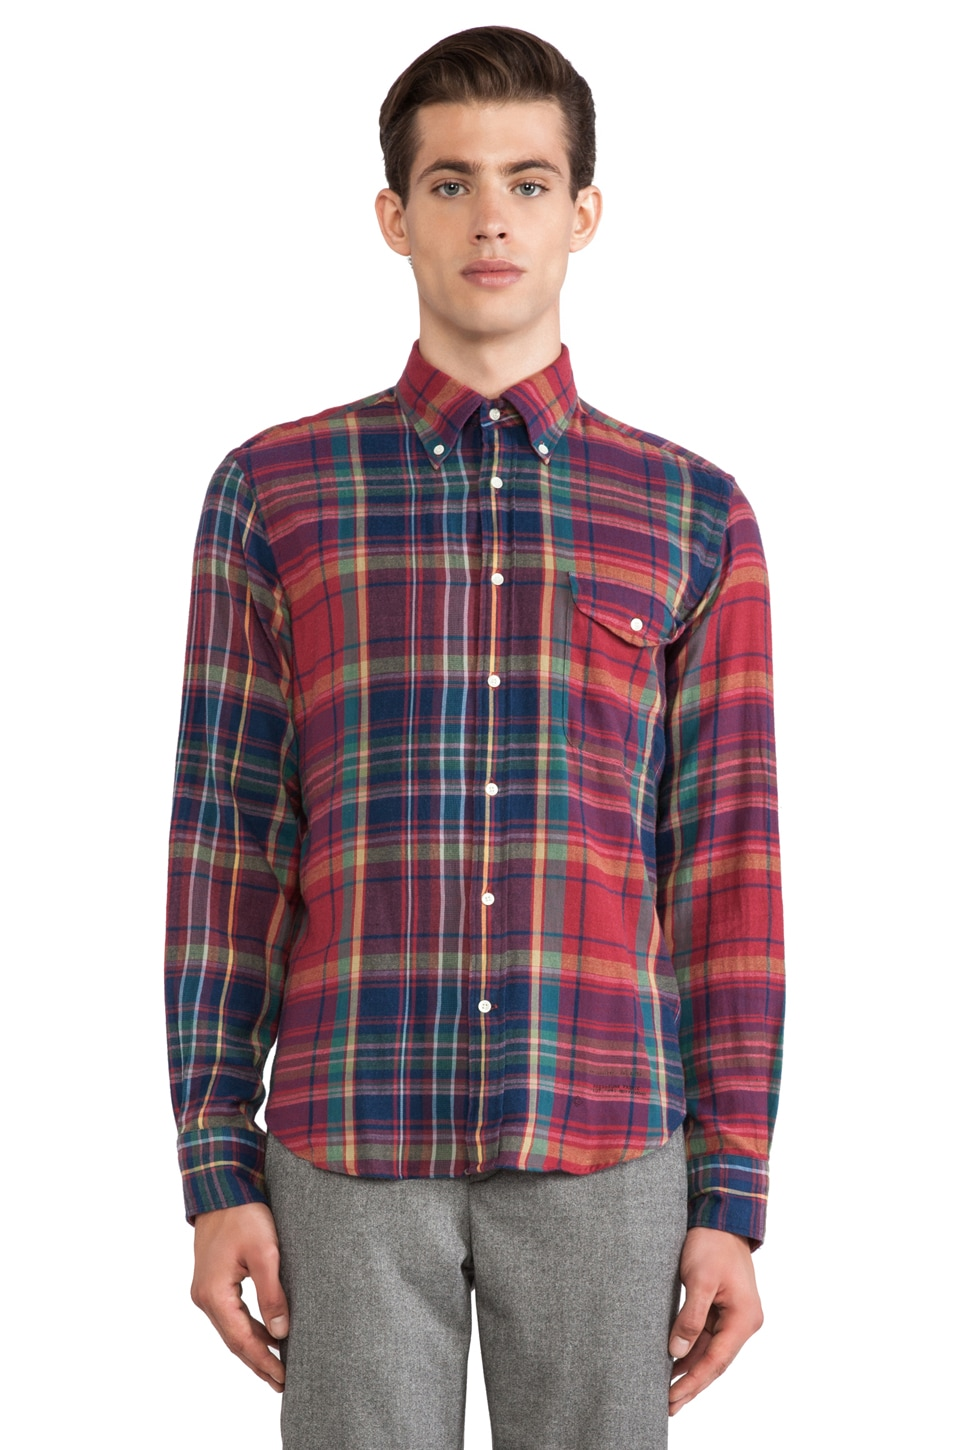 GANT Rugger Windblown Flannel in Red